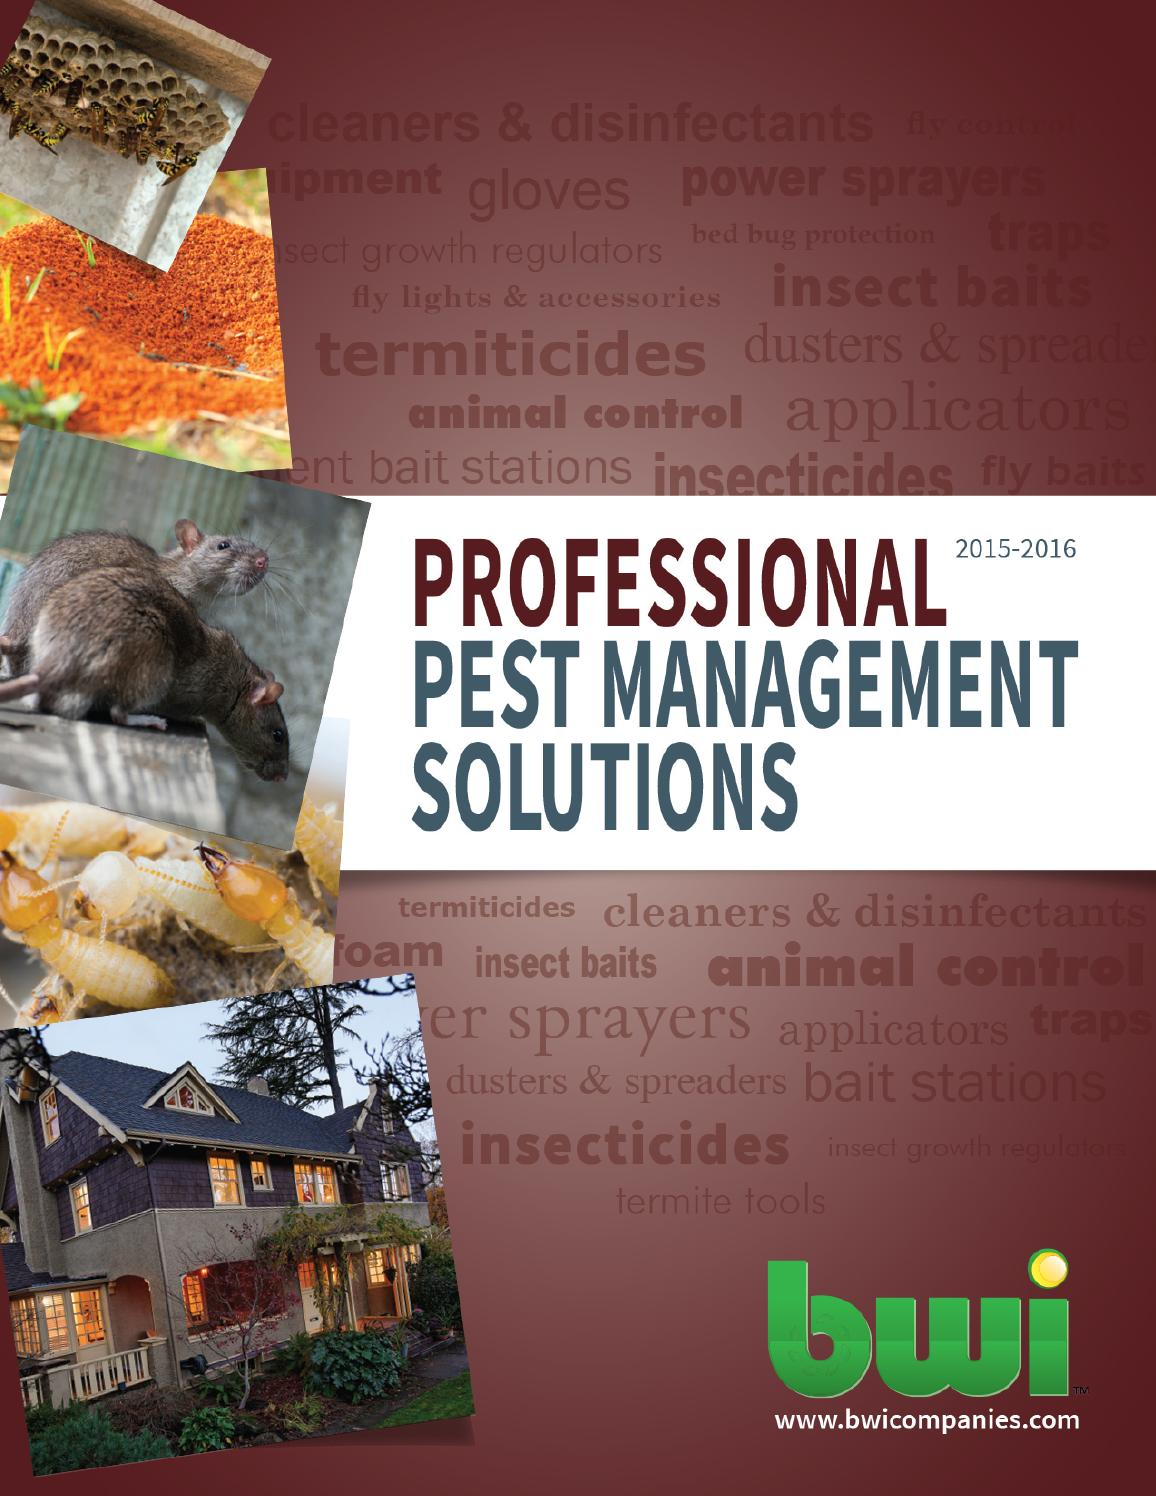 Bwi Professional Pest Management Solutions